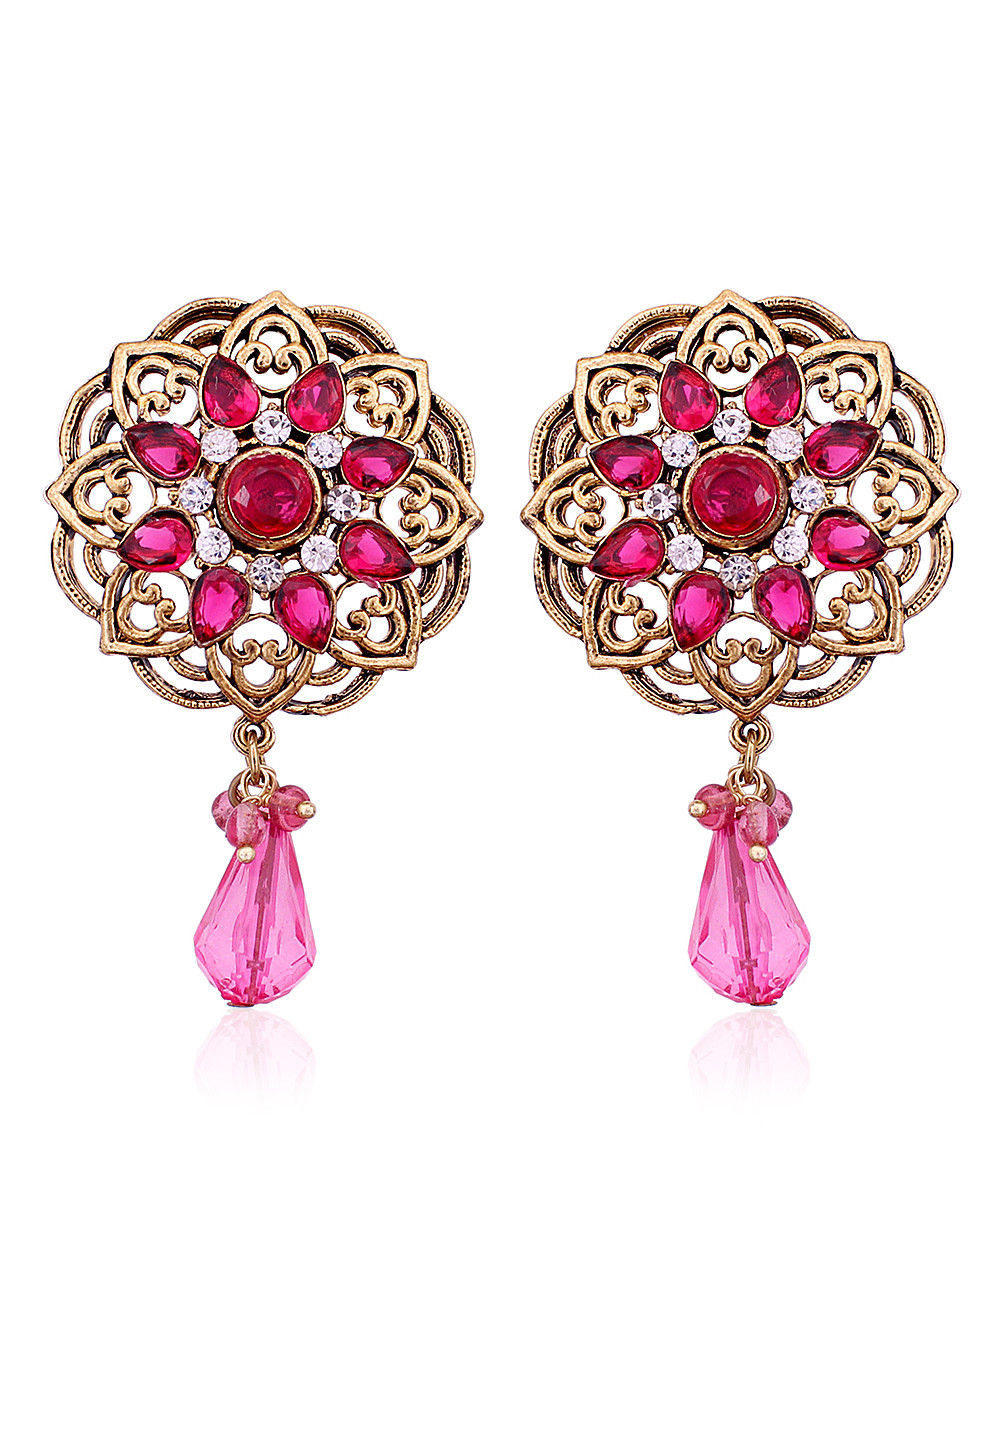 Stone Studded Earring in Fuchsia and Golden